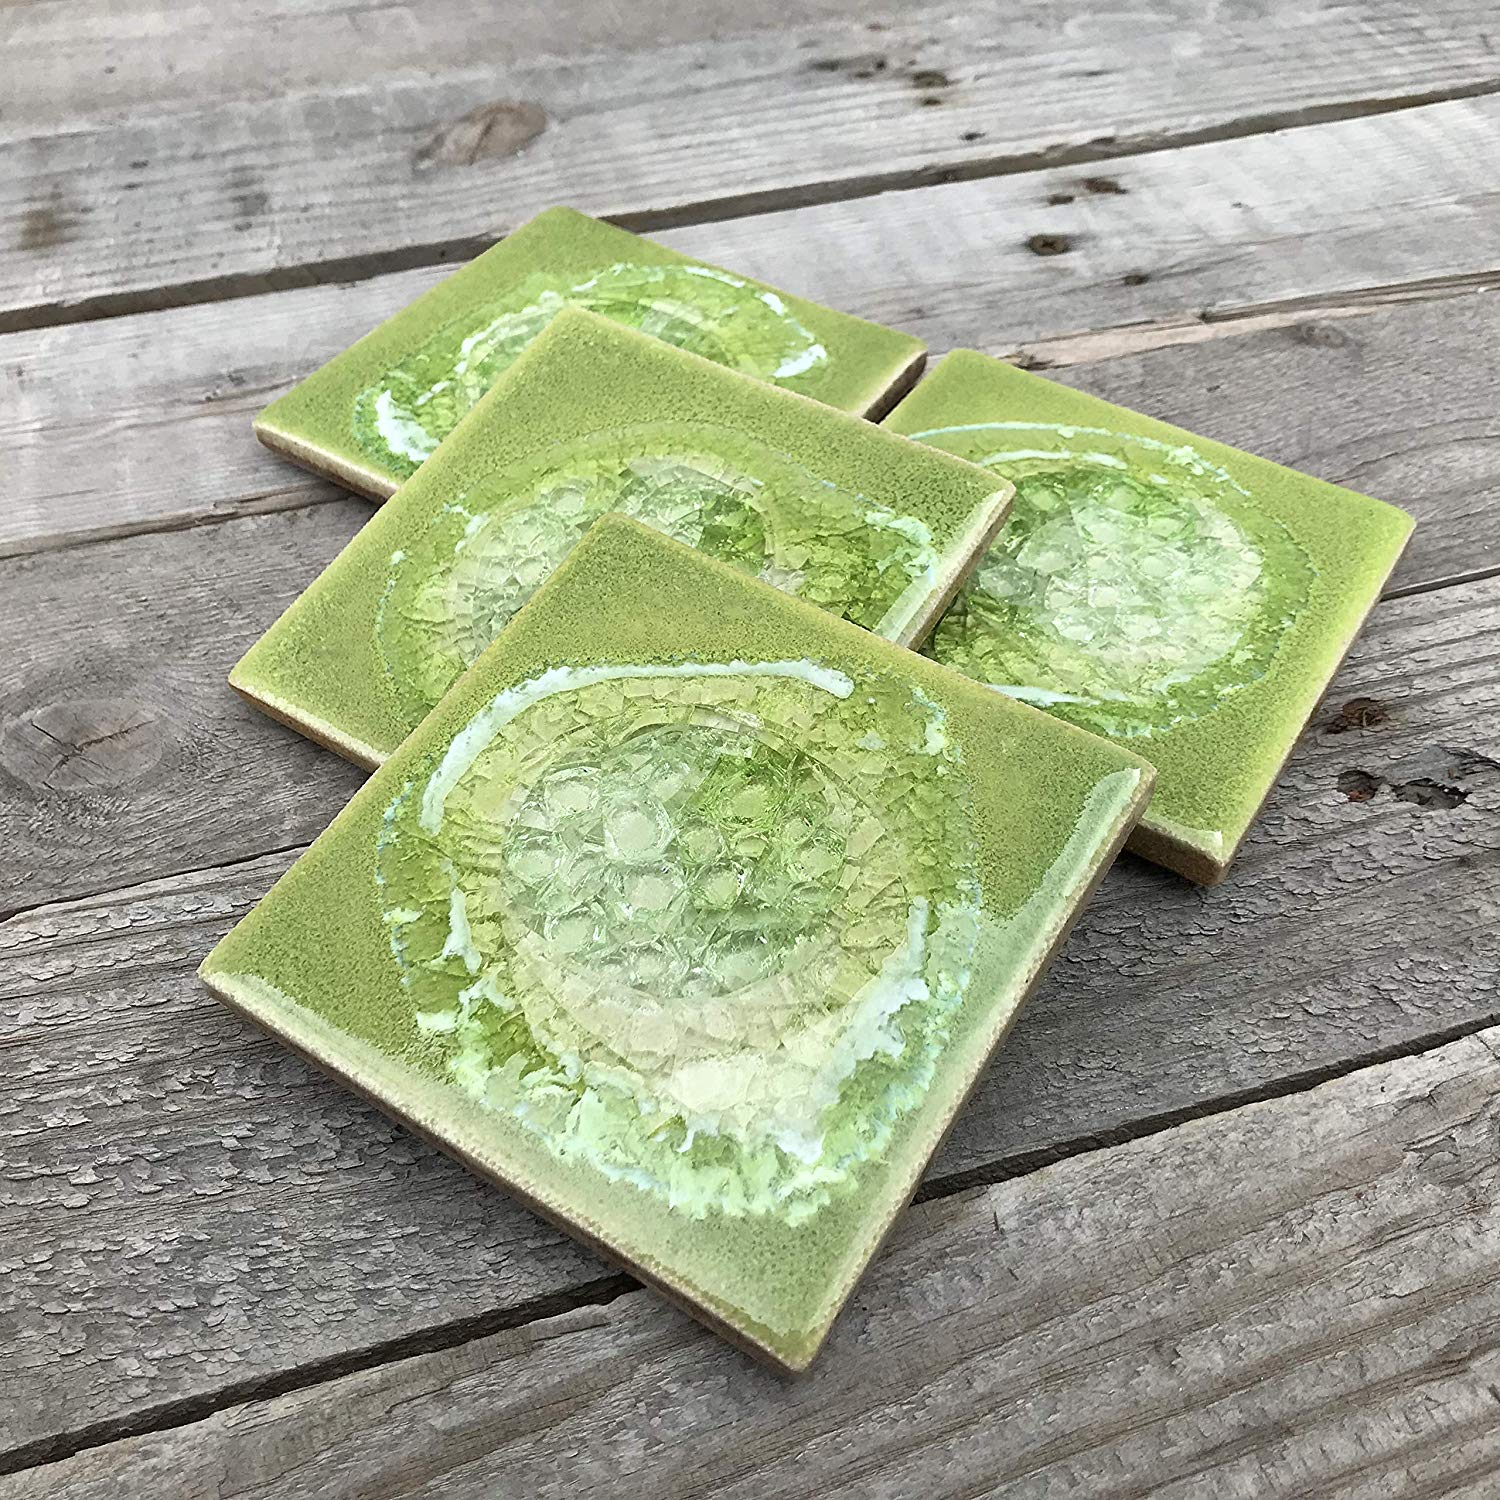 Geode Crackle Coaster Set of 4 in LEAF GREEN: Geode Coaster, Crackle Coaster, Fused Glass Coaster, Crackle Glass Coaster, Agate Coaster, Ceramic Coaster, Dock 6 Pottery Coaster